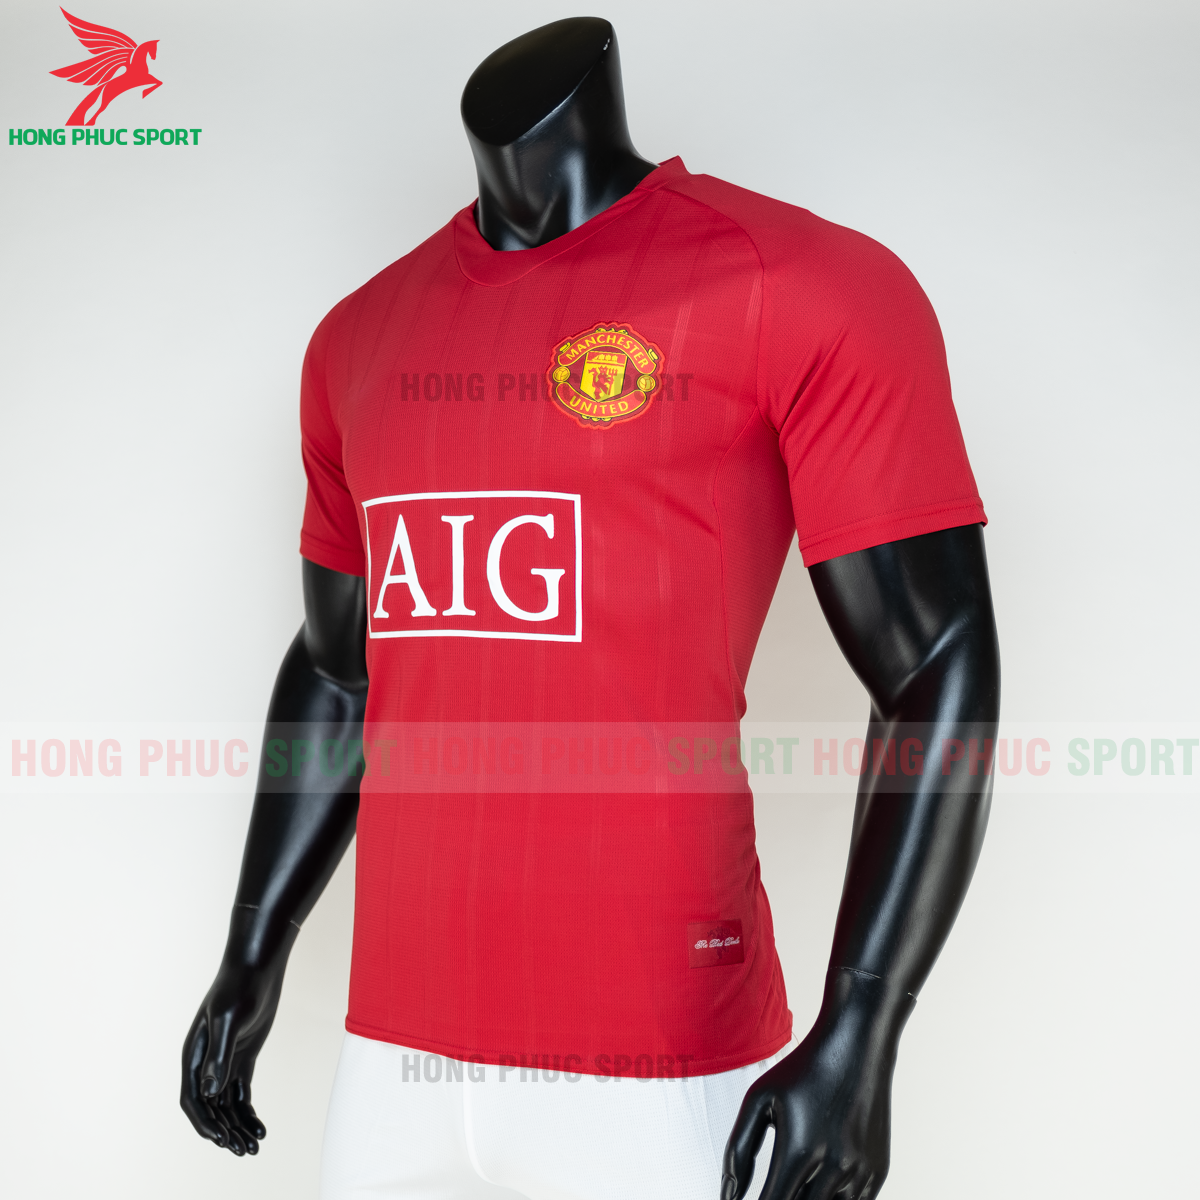 https://cdn.hongphucsport.com/unsafe/s4.shopbay.vn/files/285/ao-manchester-united-2008-2009-san-nha-hang-thailand-2-5fb1fa63b3409.png